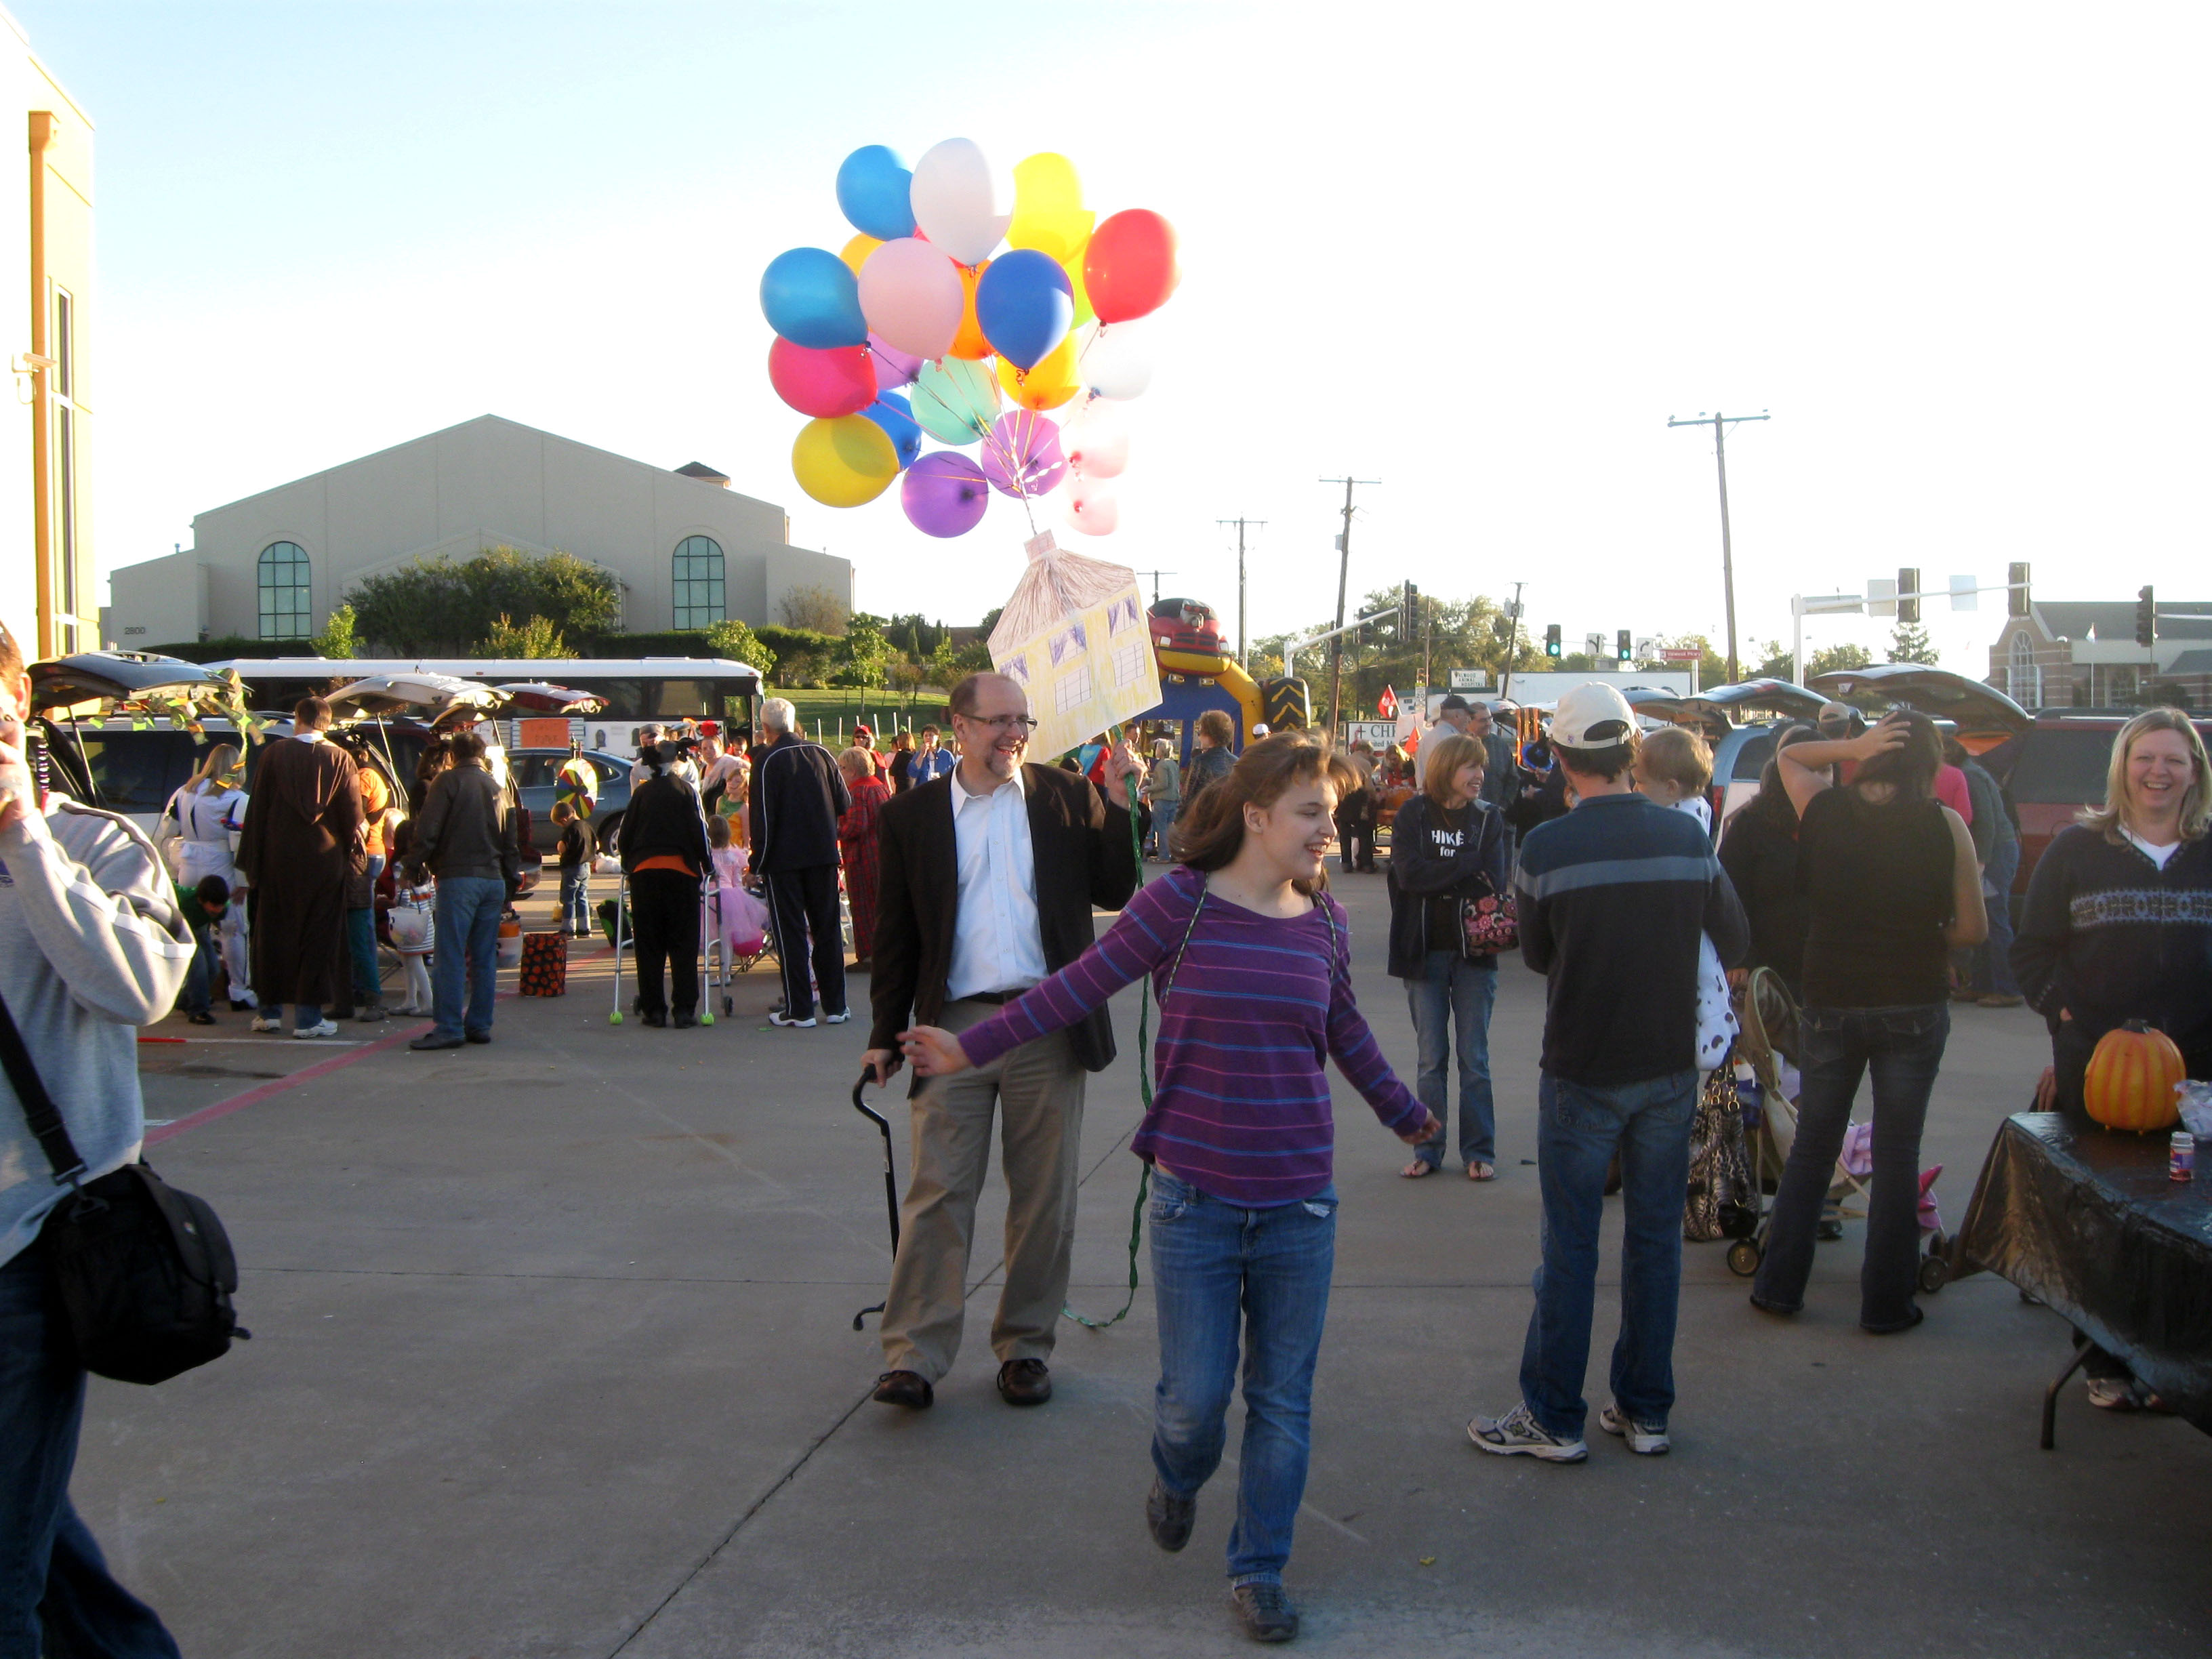 """Up"" at church event"